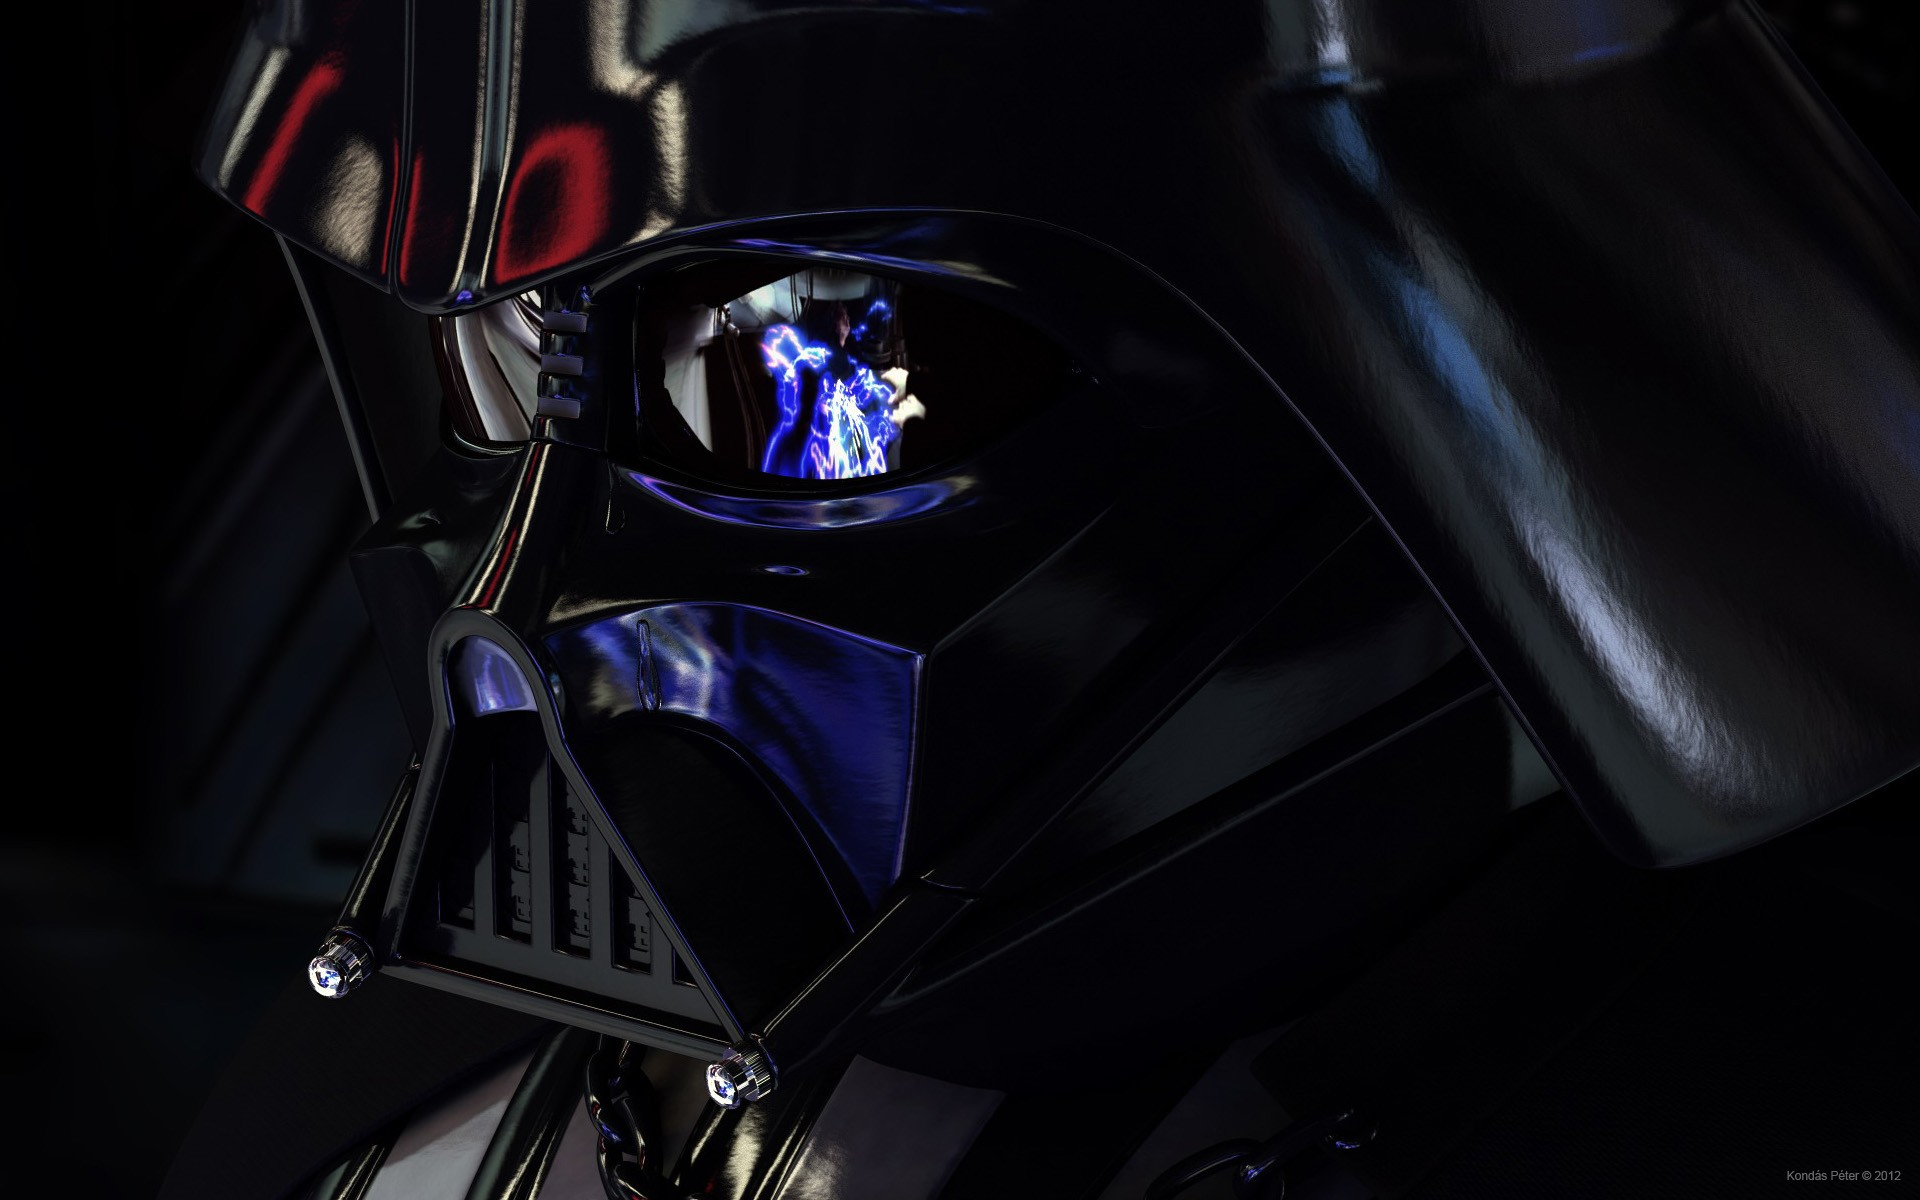 75 Darth Vader Wallpaper On Wallpapersafari